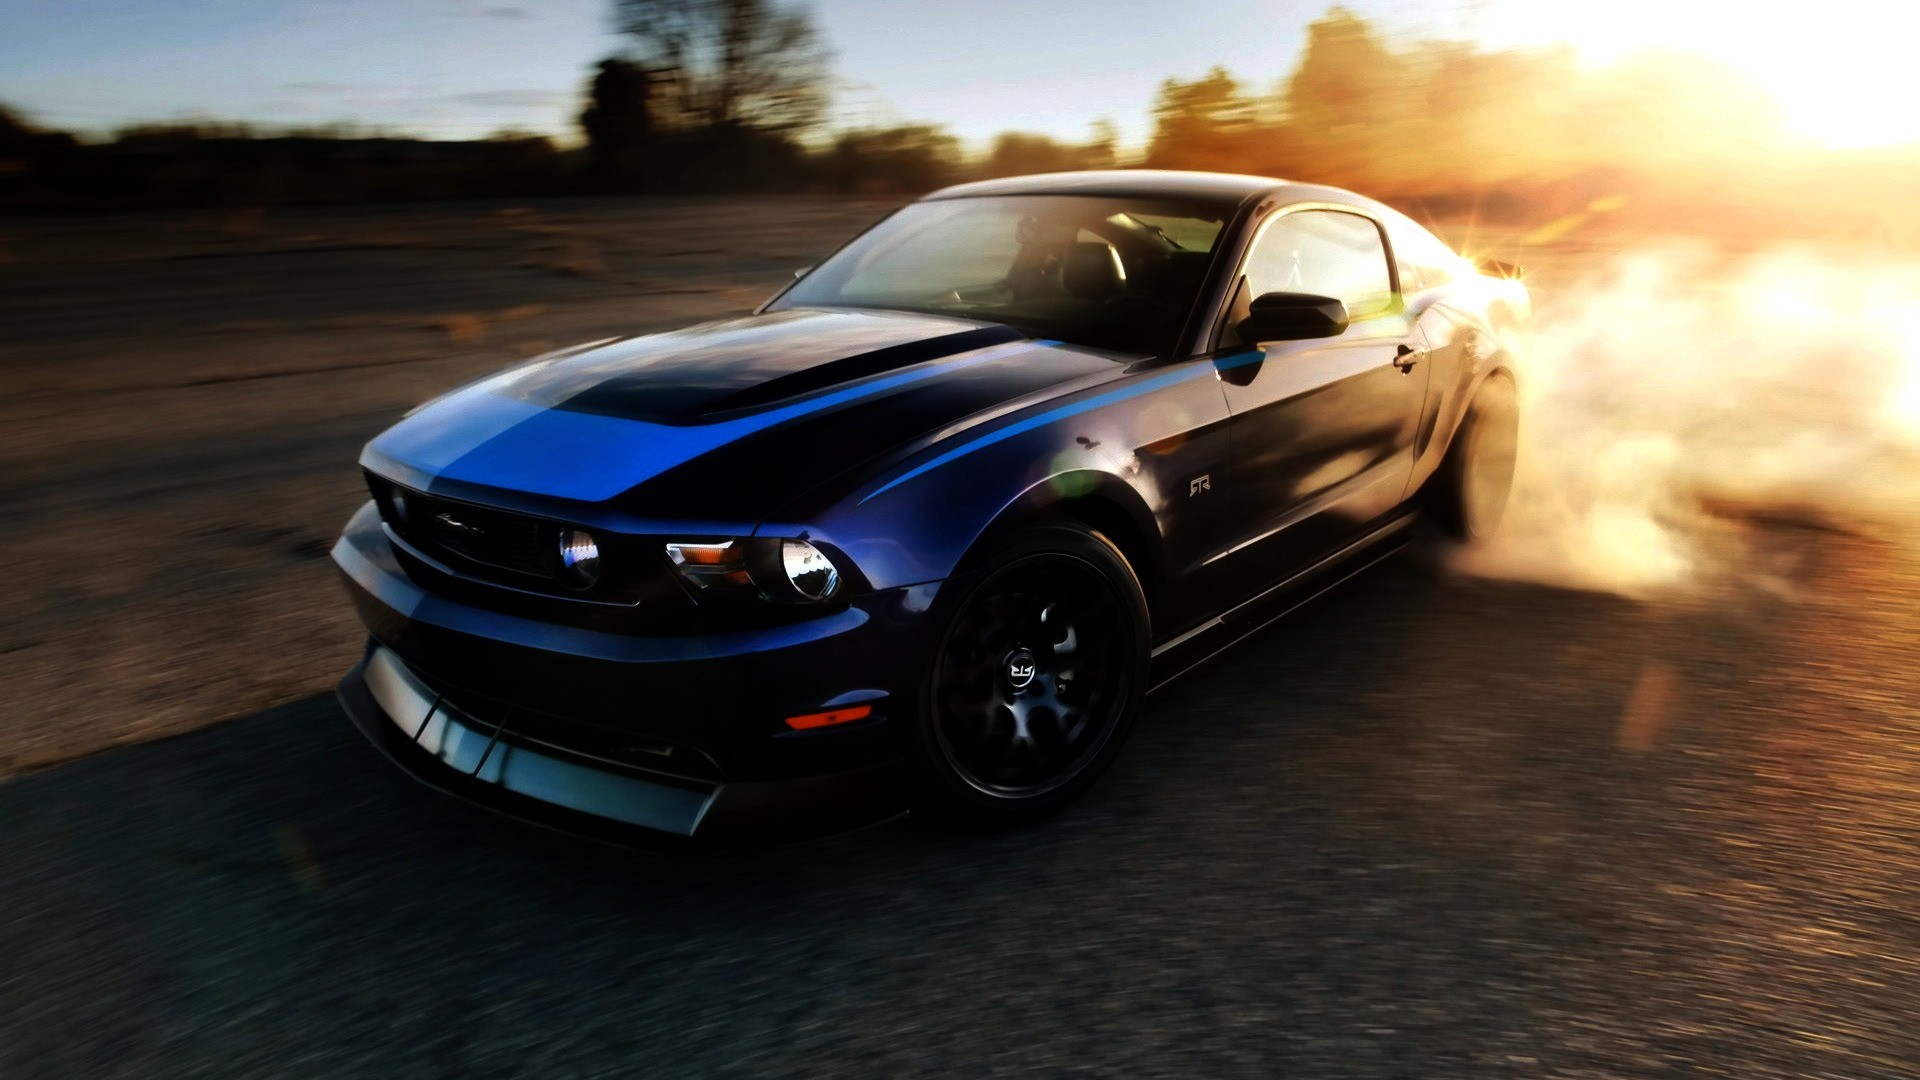 Cars Muscle Wallpaper 1920x1080 Cars, Muscle, Cars, Dust, Ford ...